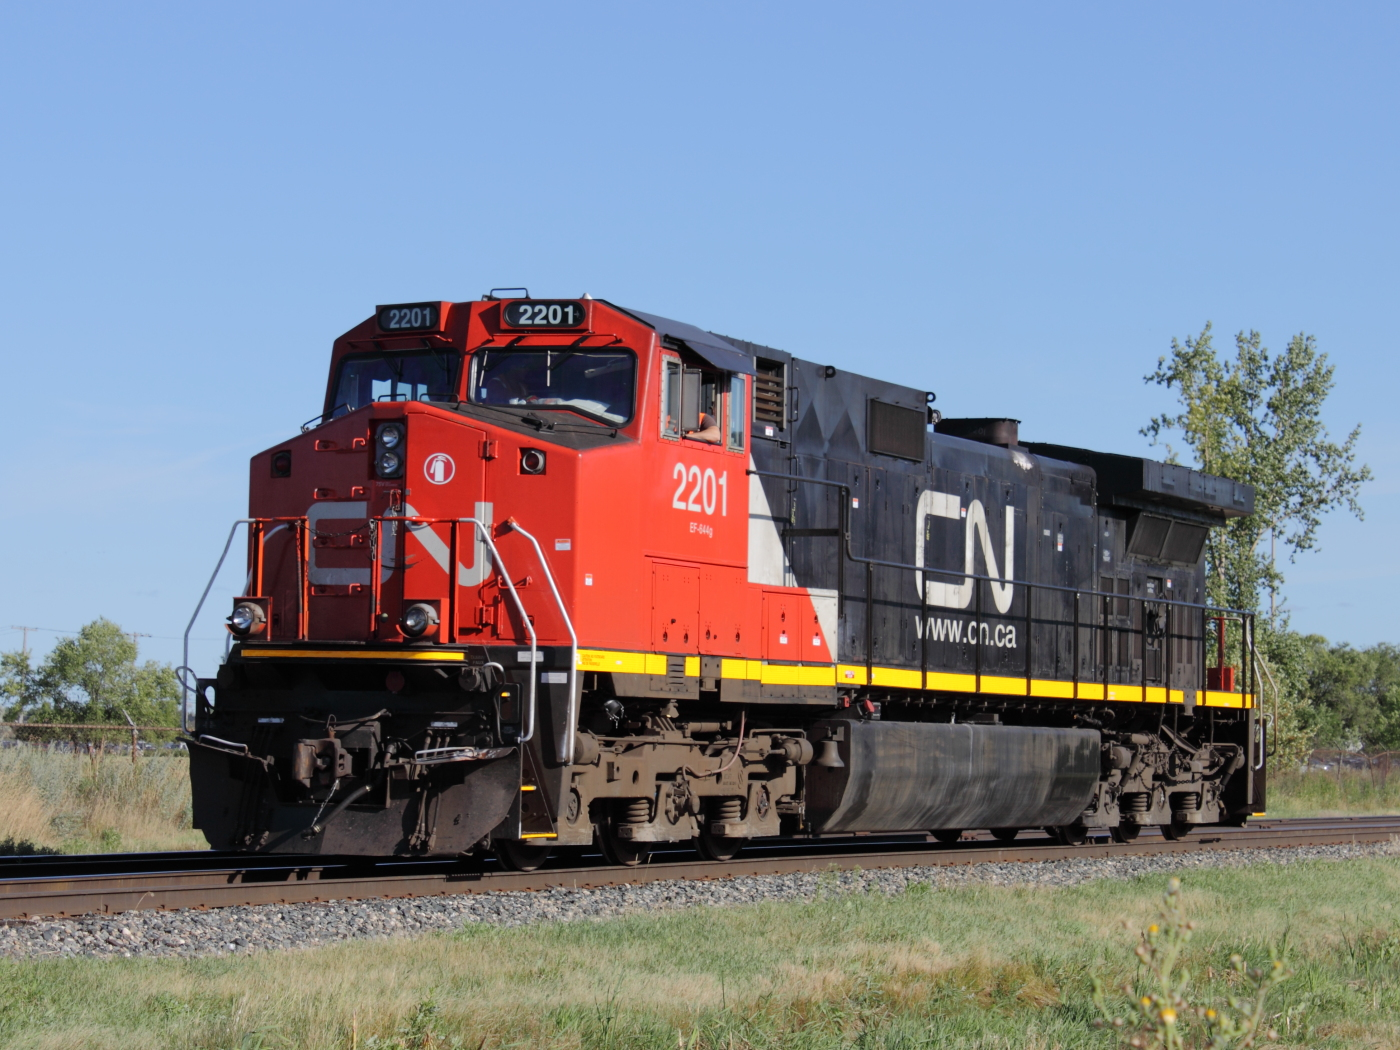 CN 2201 in Winnipeg, MB 2012/08/16